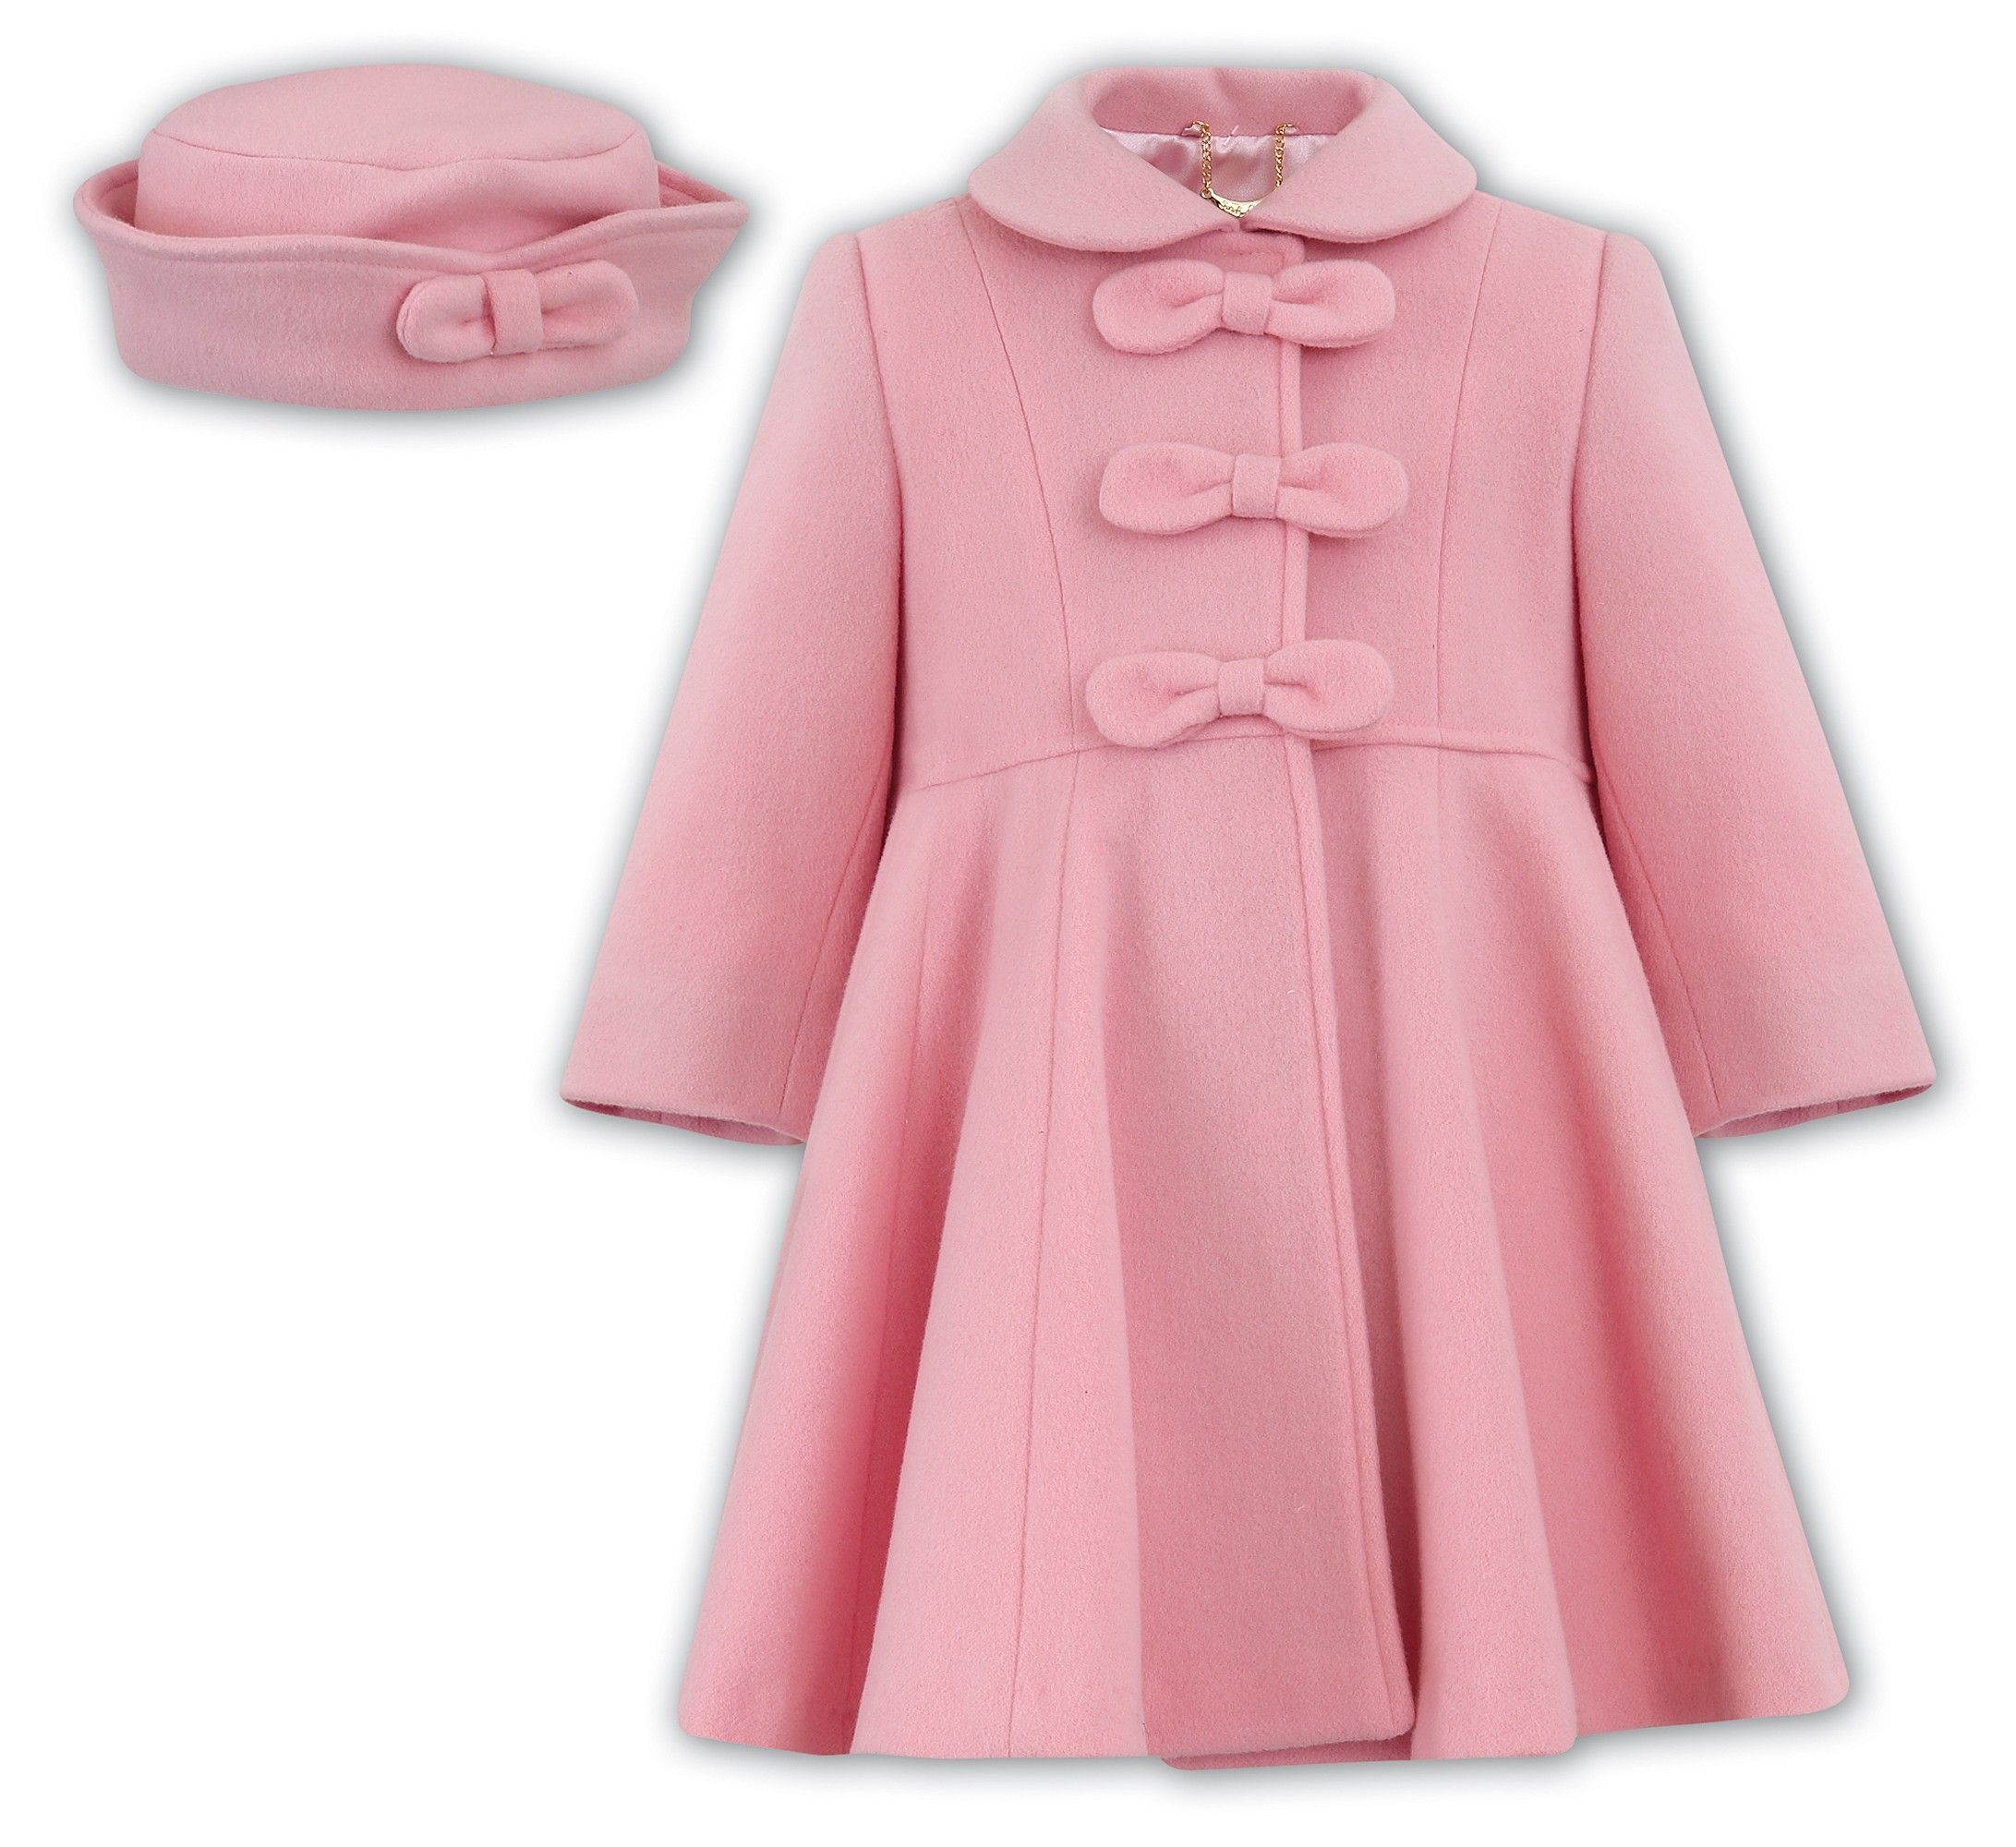 0076ccc5d Sarah Louise - Coat and Hat - Pink - Style 10143